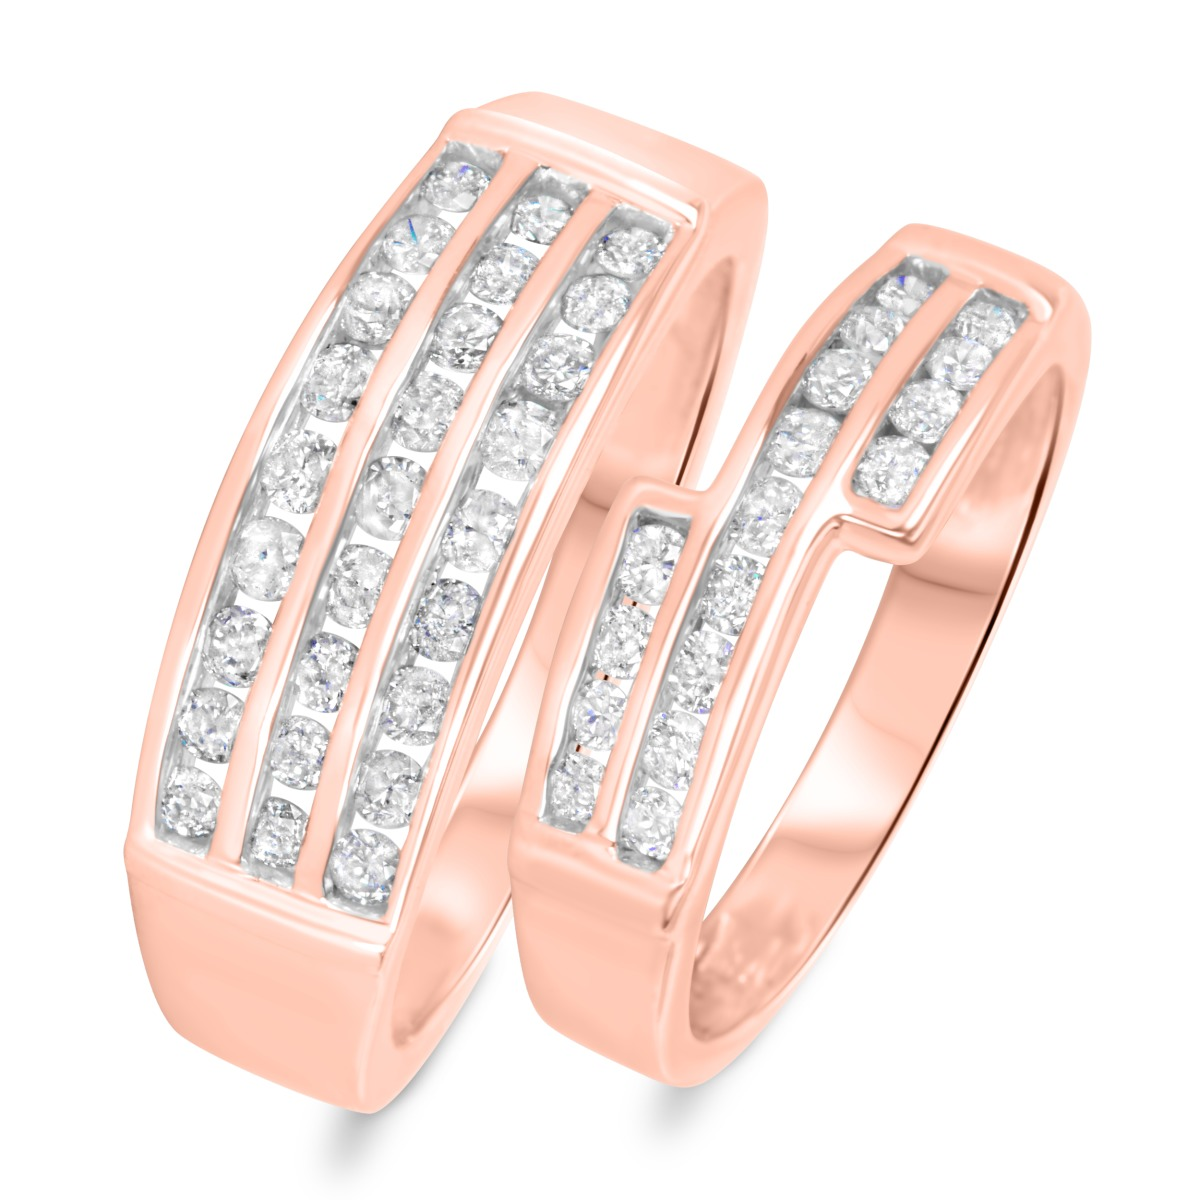 1 1/8 CT. T.W. Diamond His And Hers Wedding Band Set 14K Rose Gold